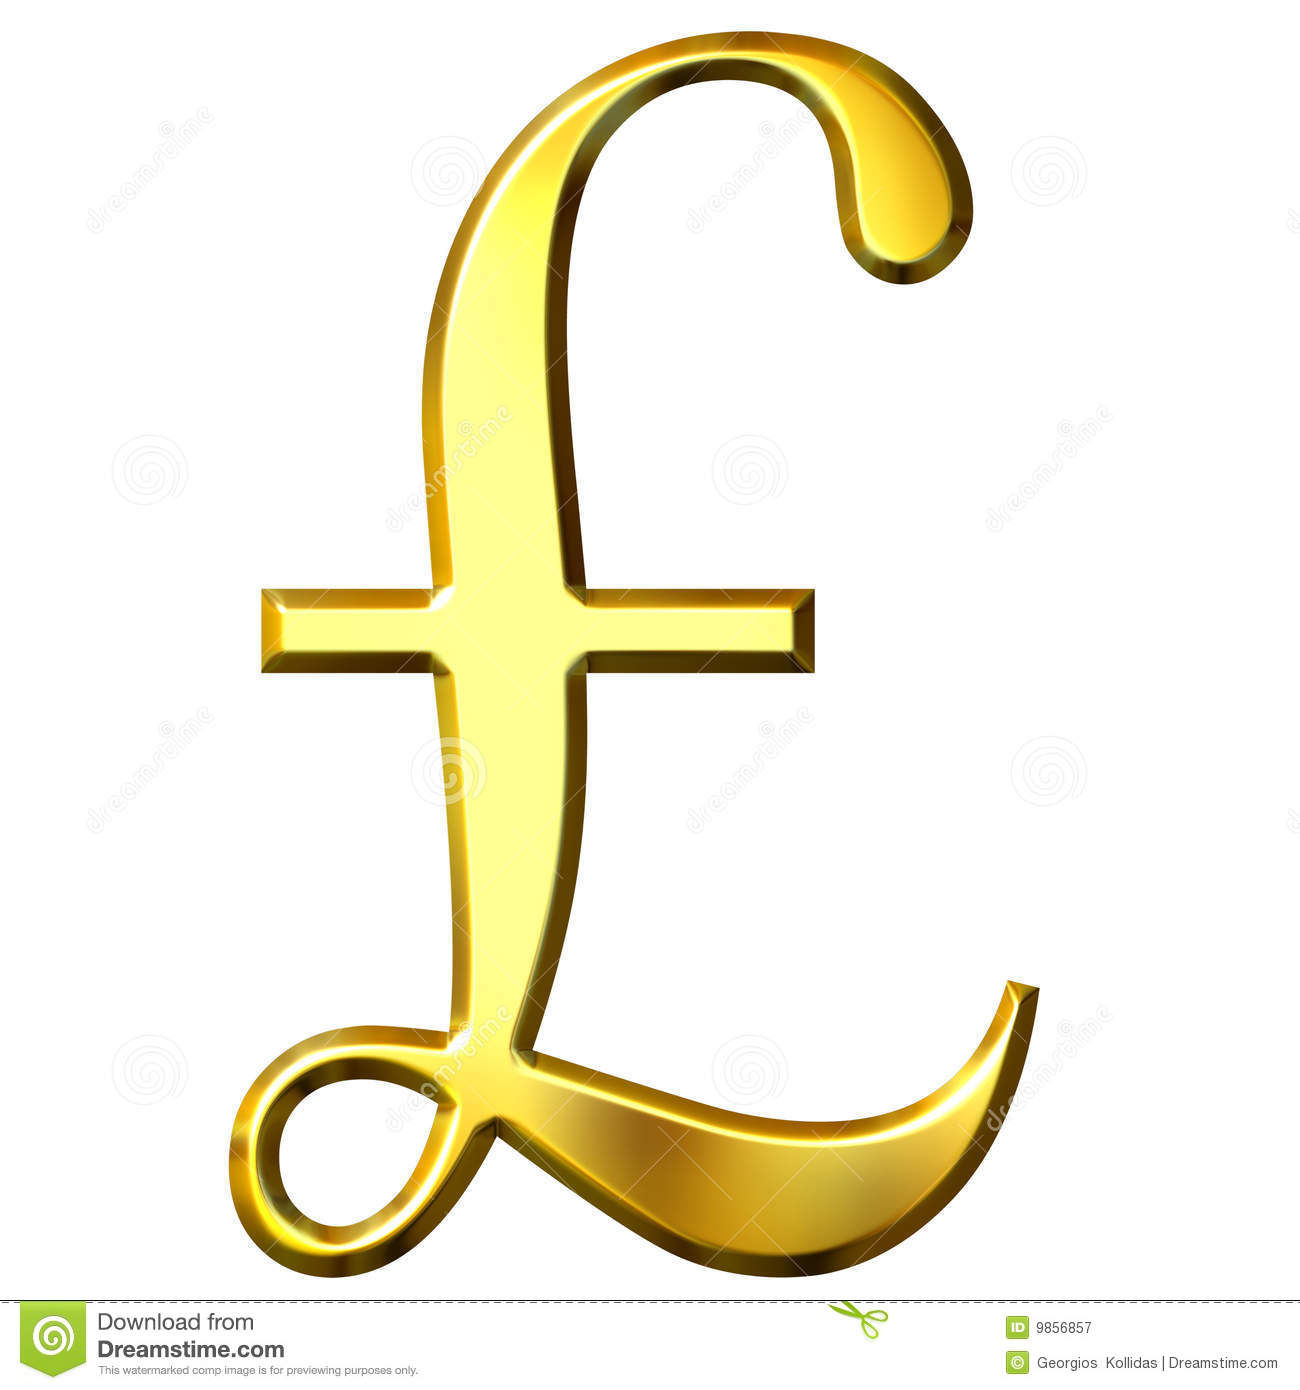 3d golden pound symbol stock illustration illustration of financial 3d golden pound symbol buycottarizona Images